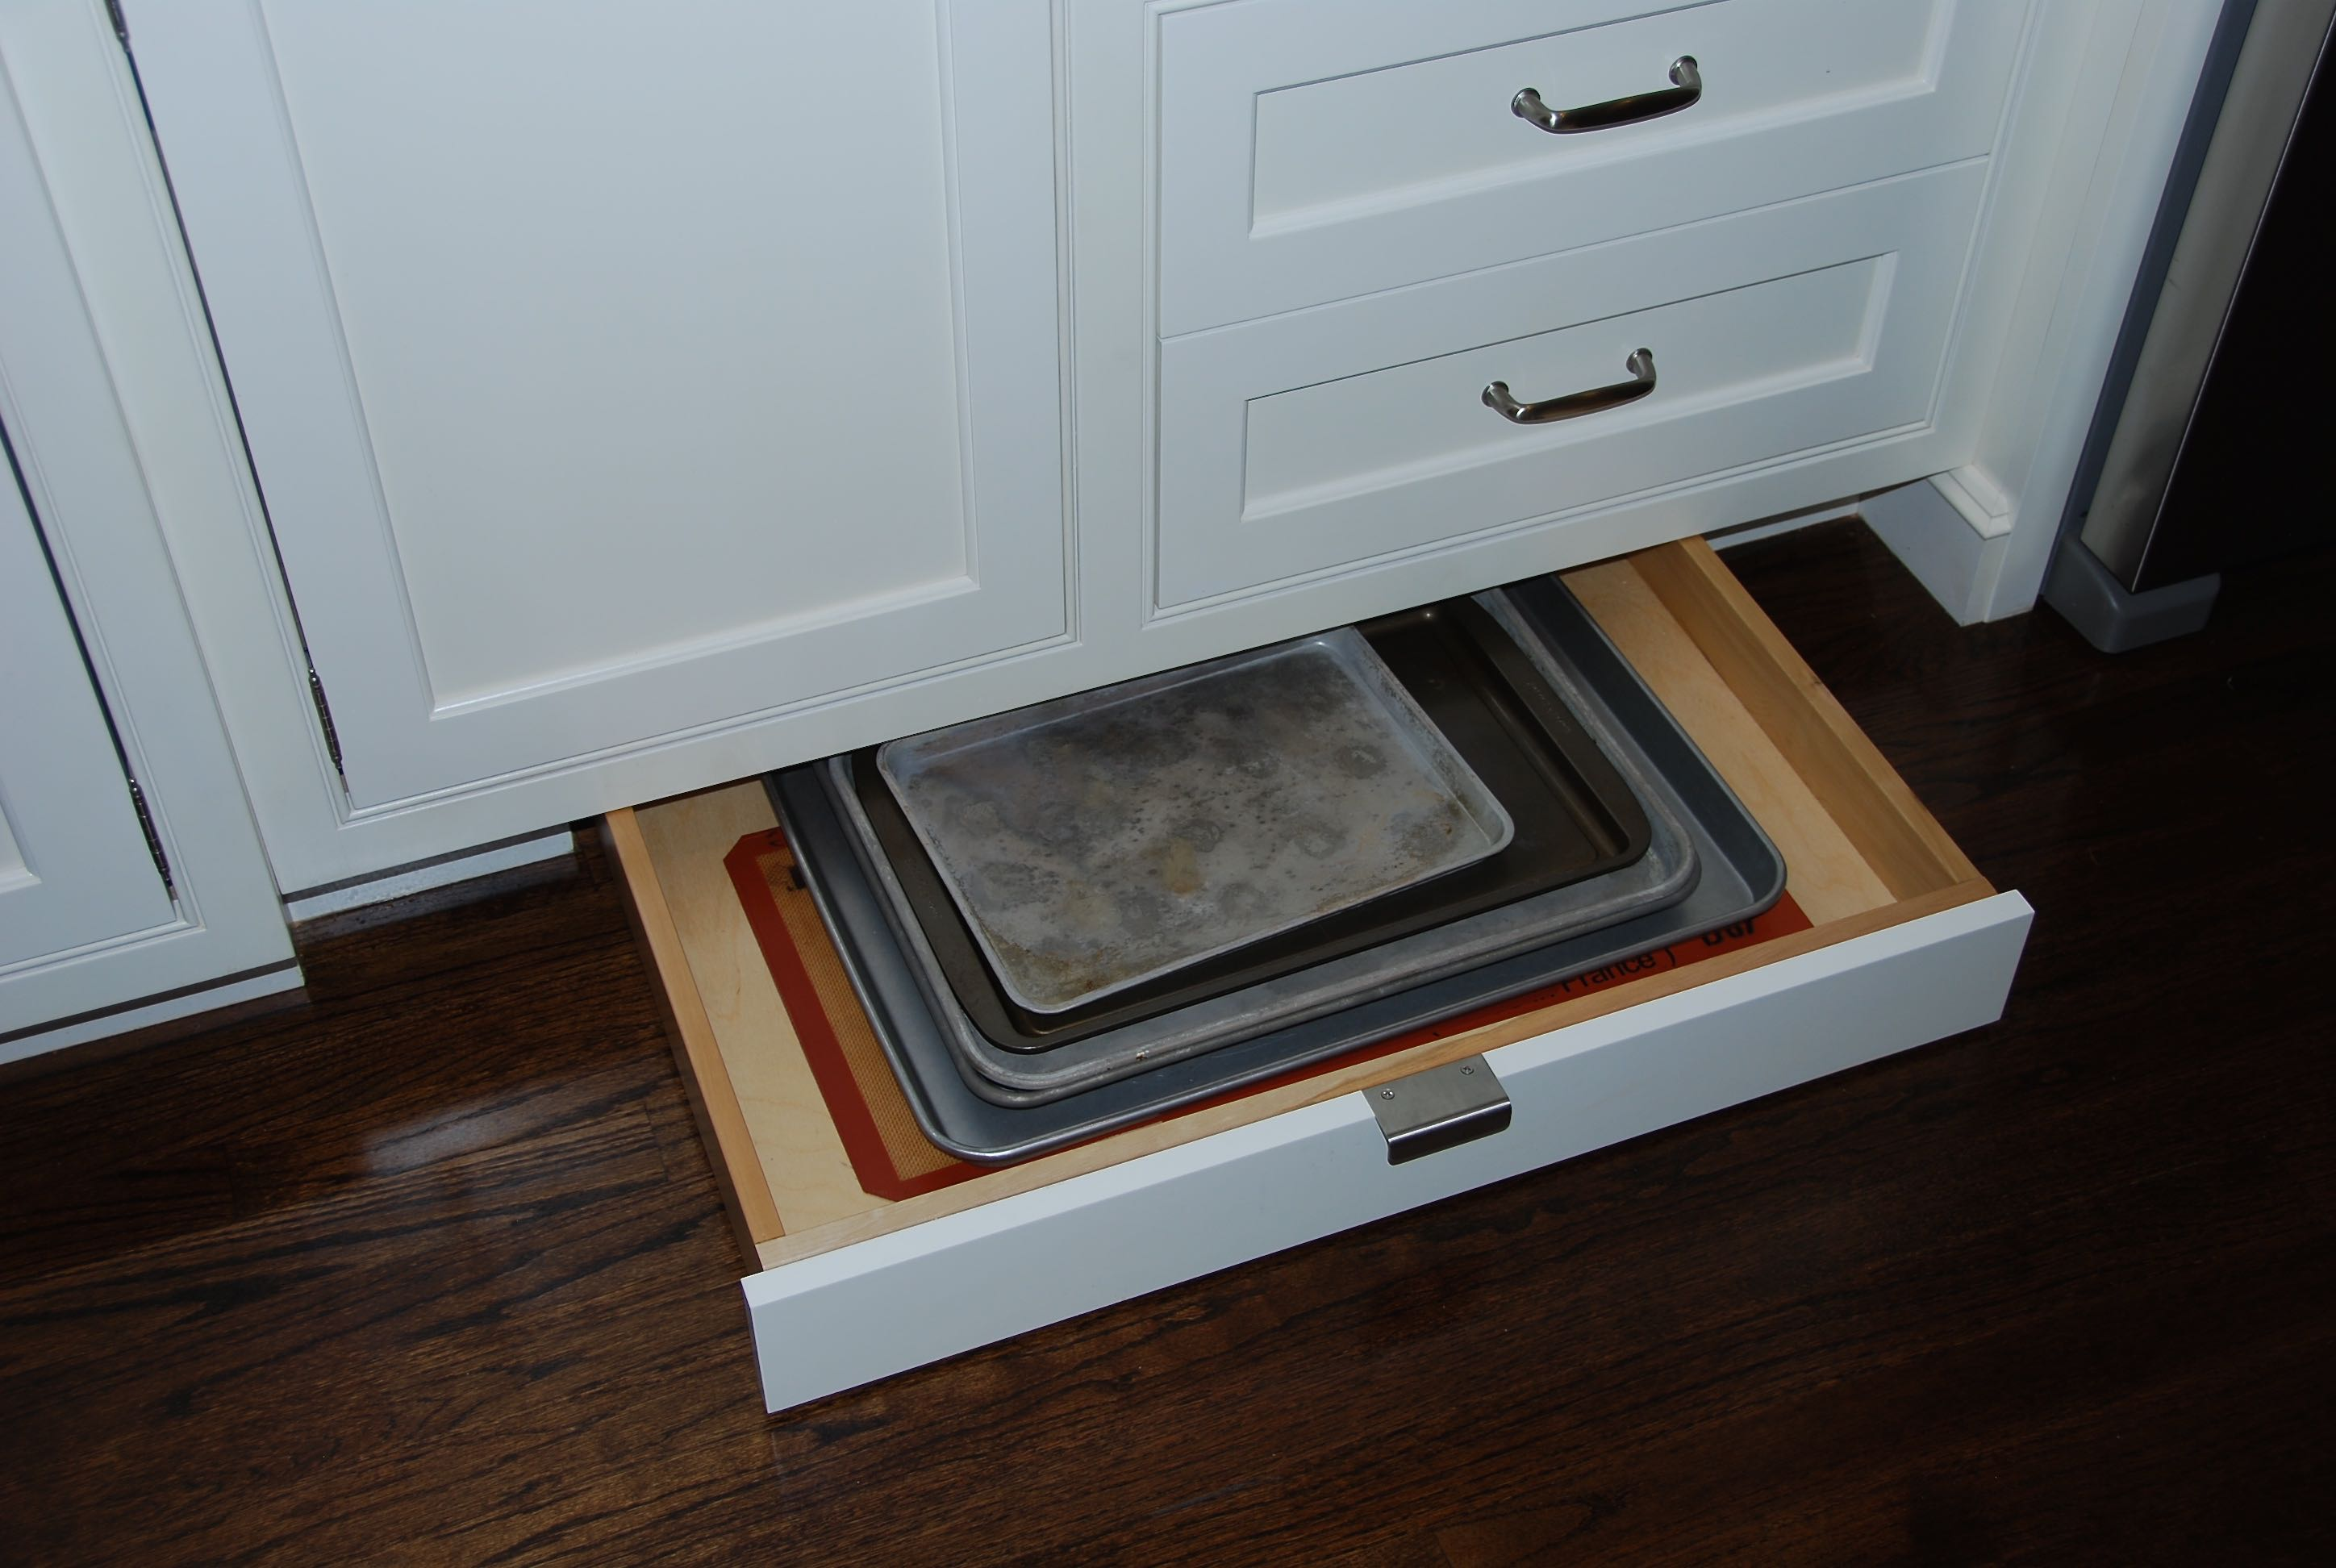 Toe Kick Drawer. Pots And Pans Organizer Discreet And Effective With ...